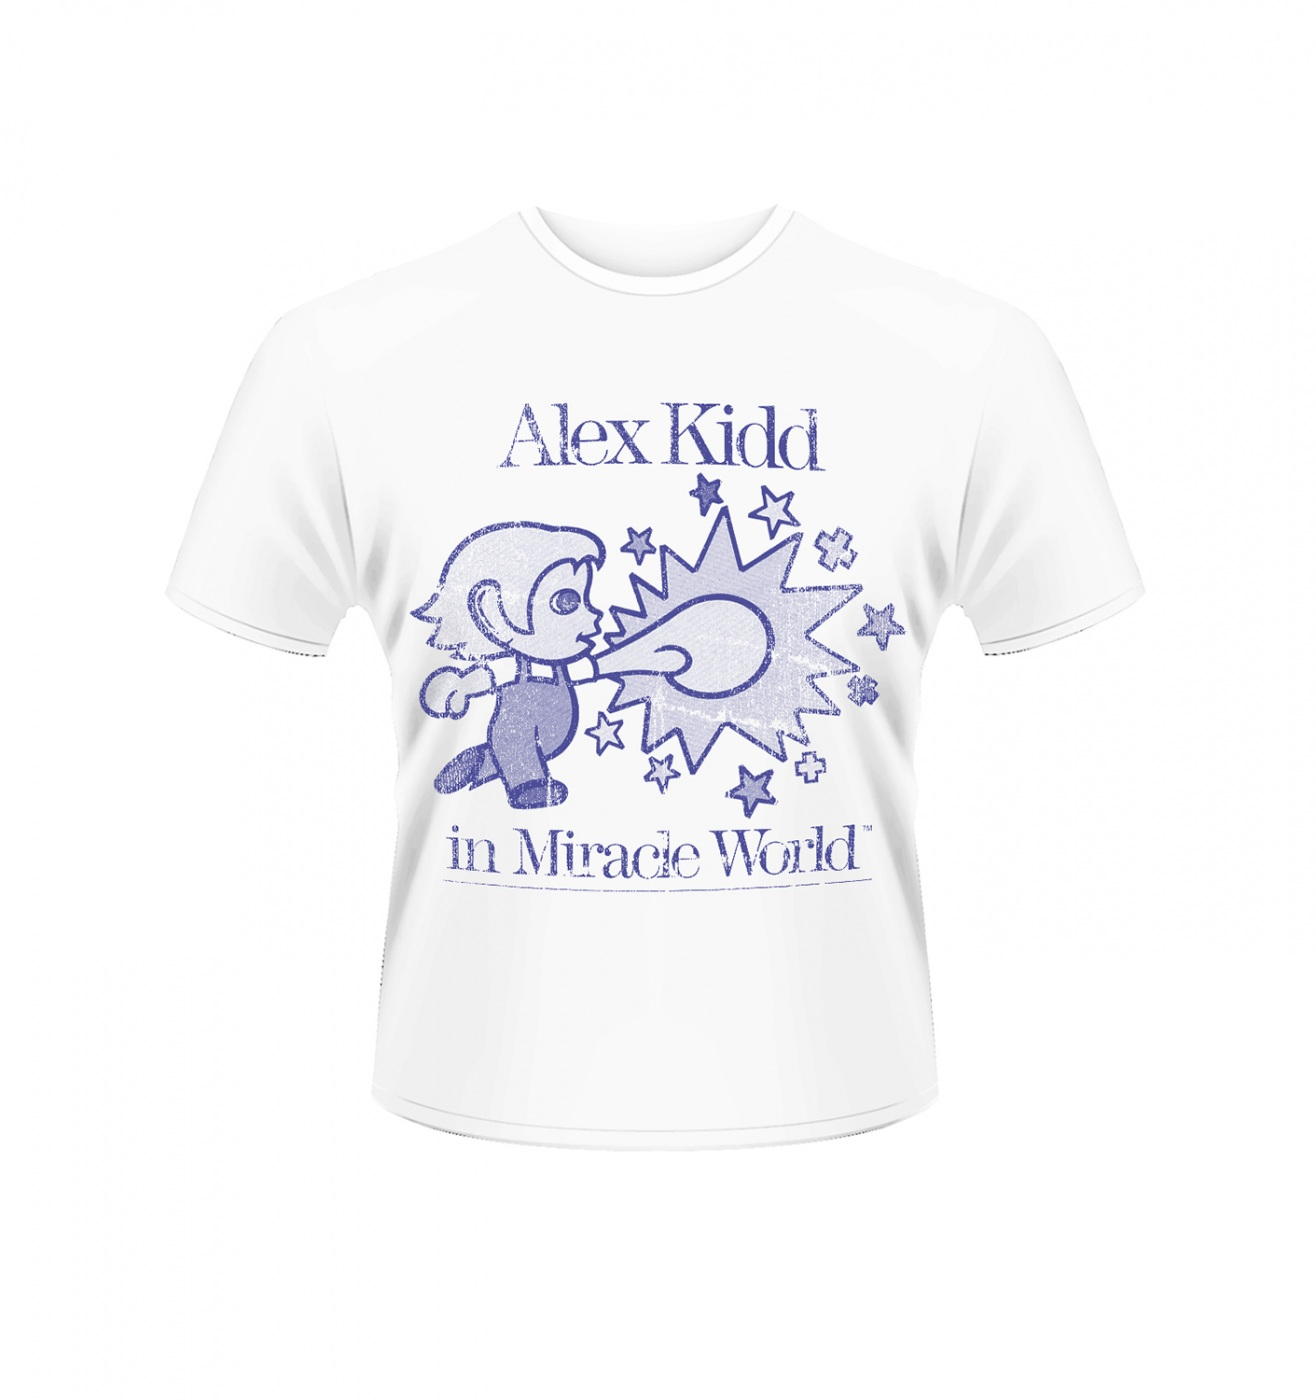 SEGA Alex Kidd In Miracle World men's t-shirt - Official